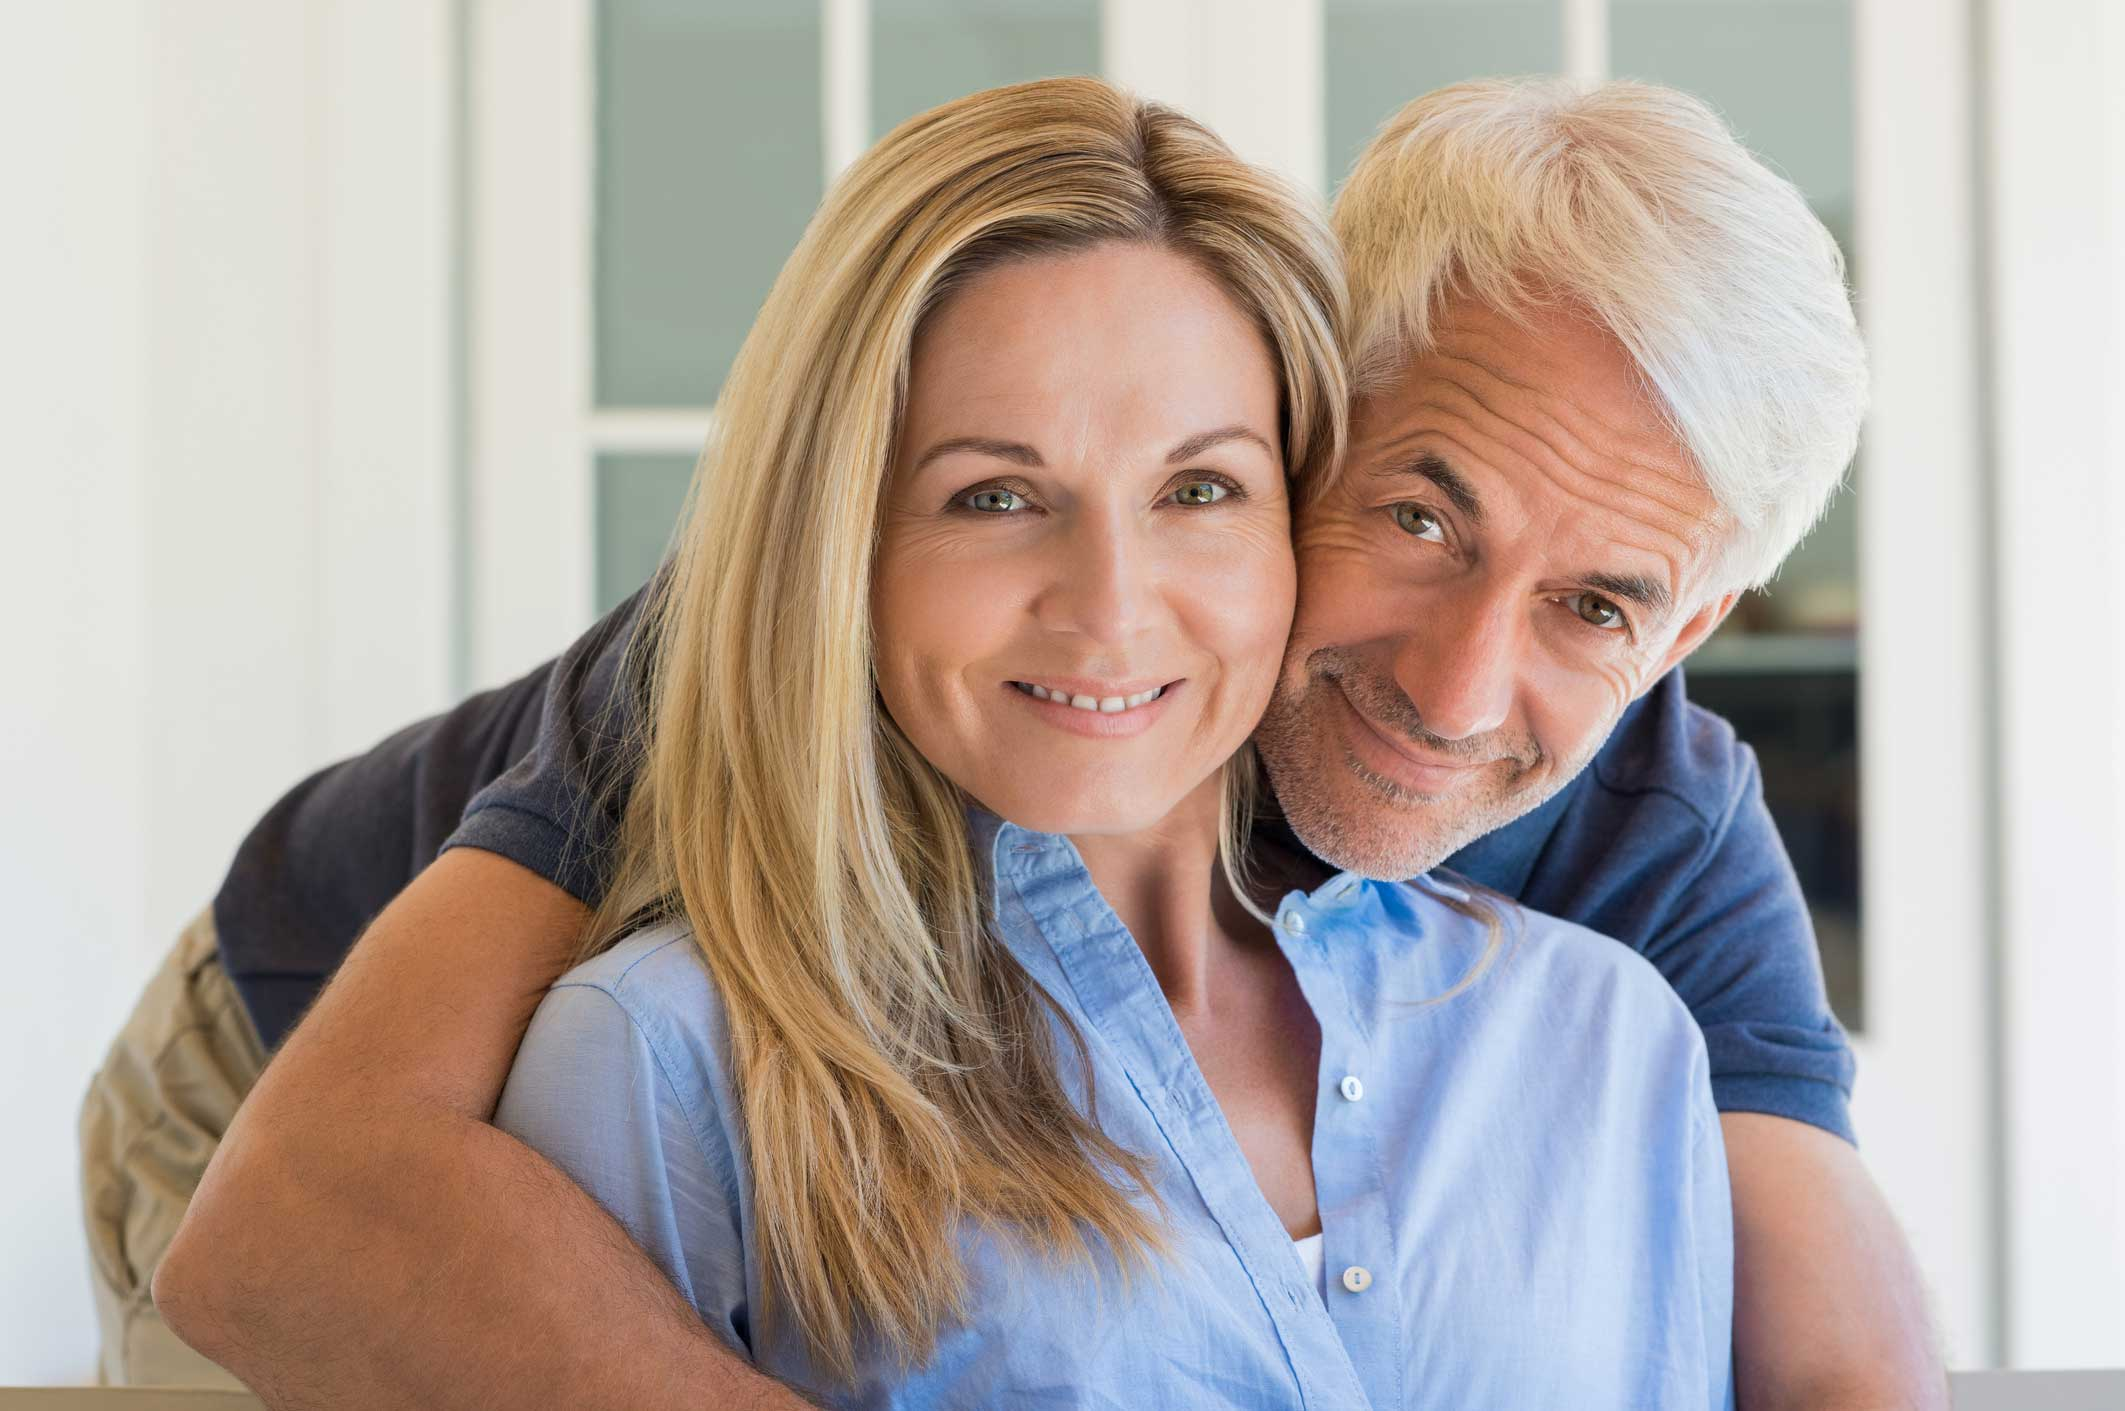 Urolift New Relief From Enlarged Prostate Health News Hub